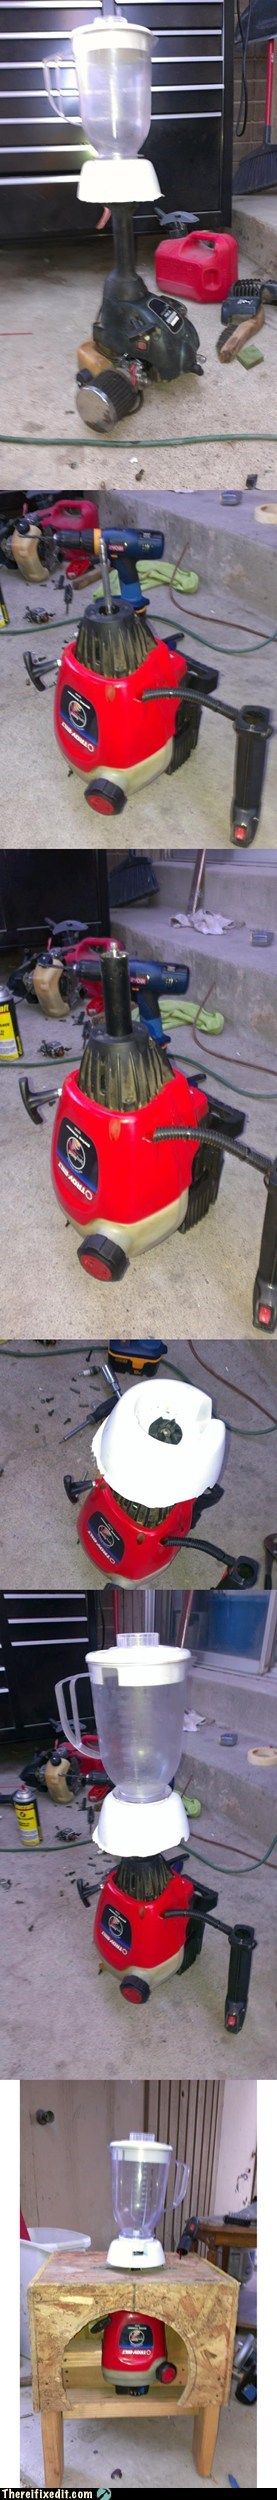 blender,drill,gas can,gas tank